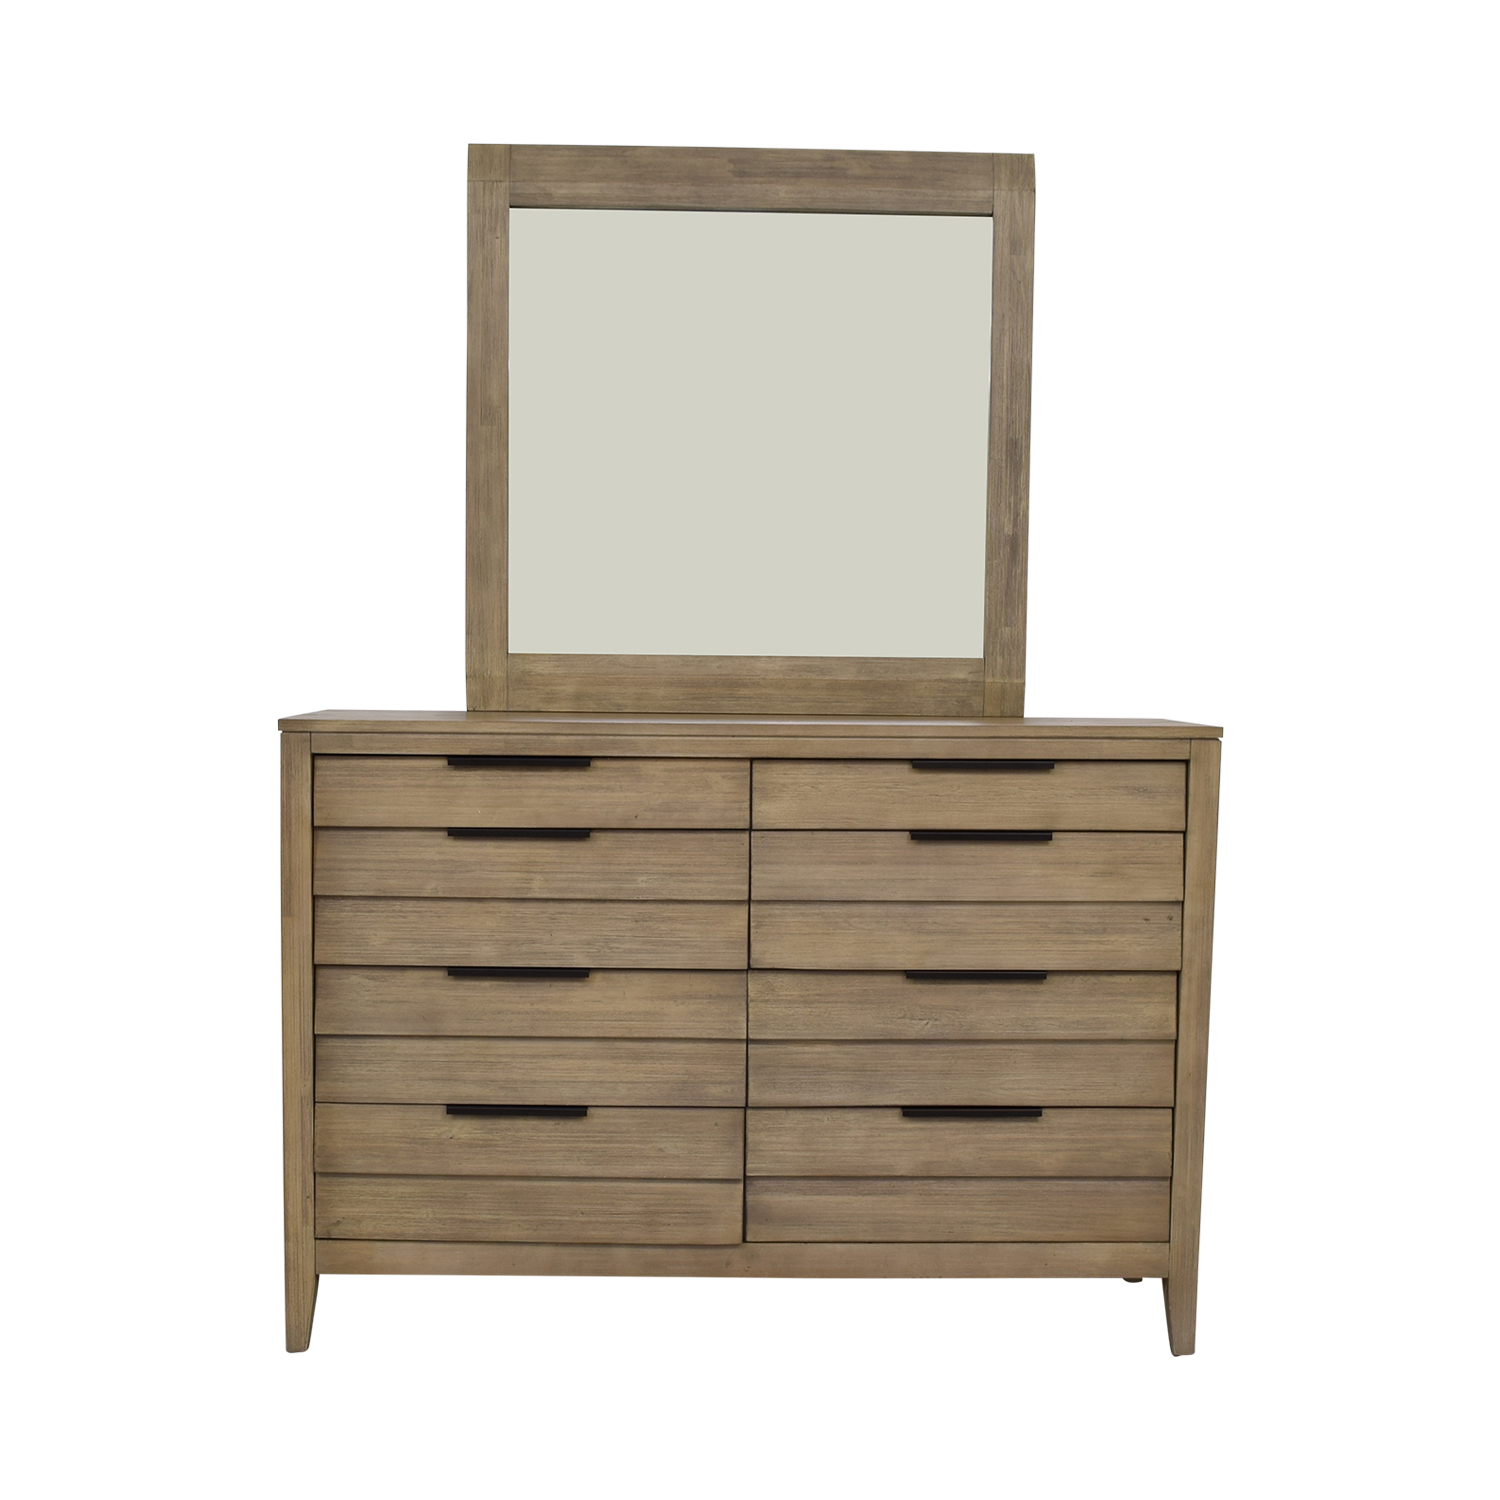 Macy's Macy's Mirrored Dresser coupon